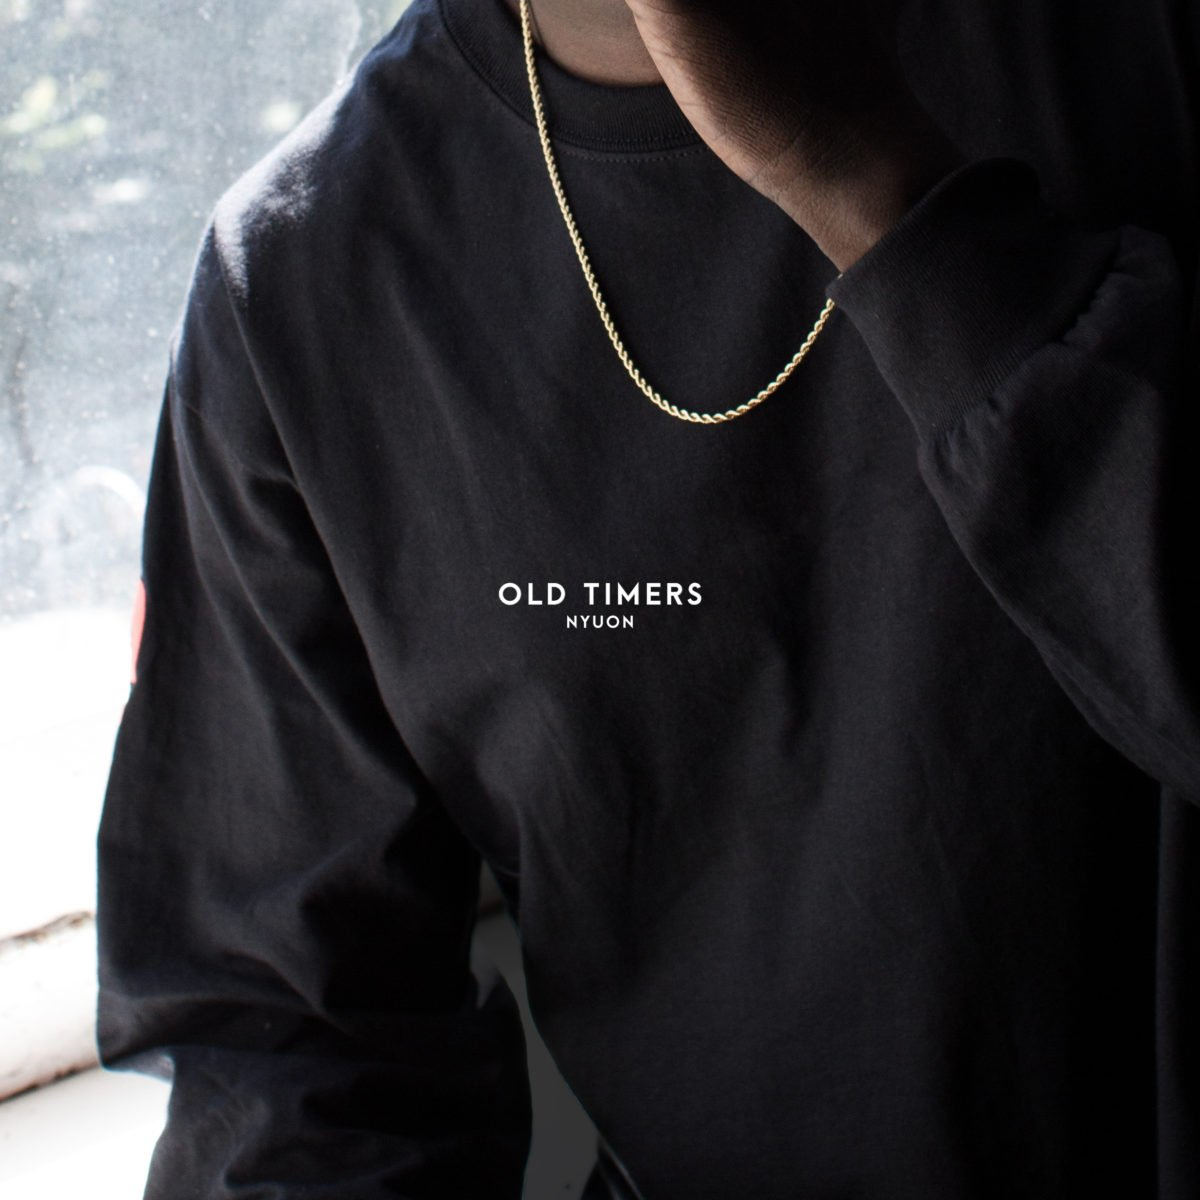 OLD TIMERS [AUD'$ EXCLUSIVE PREMIERE]